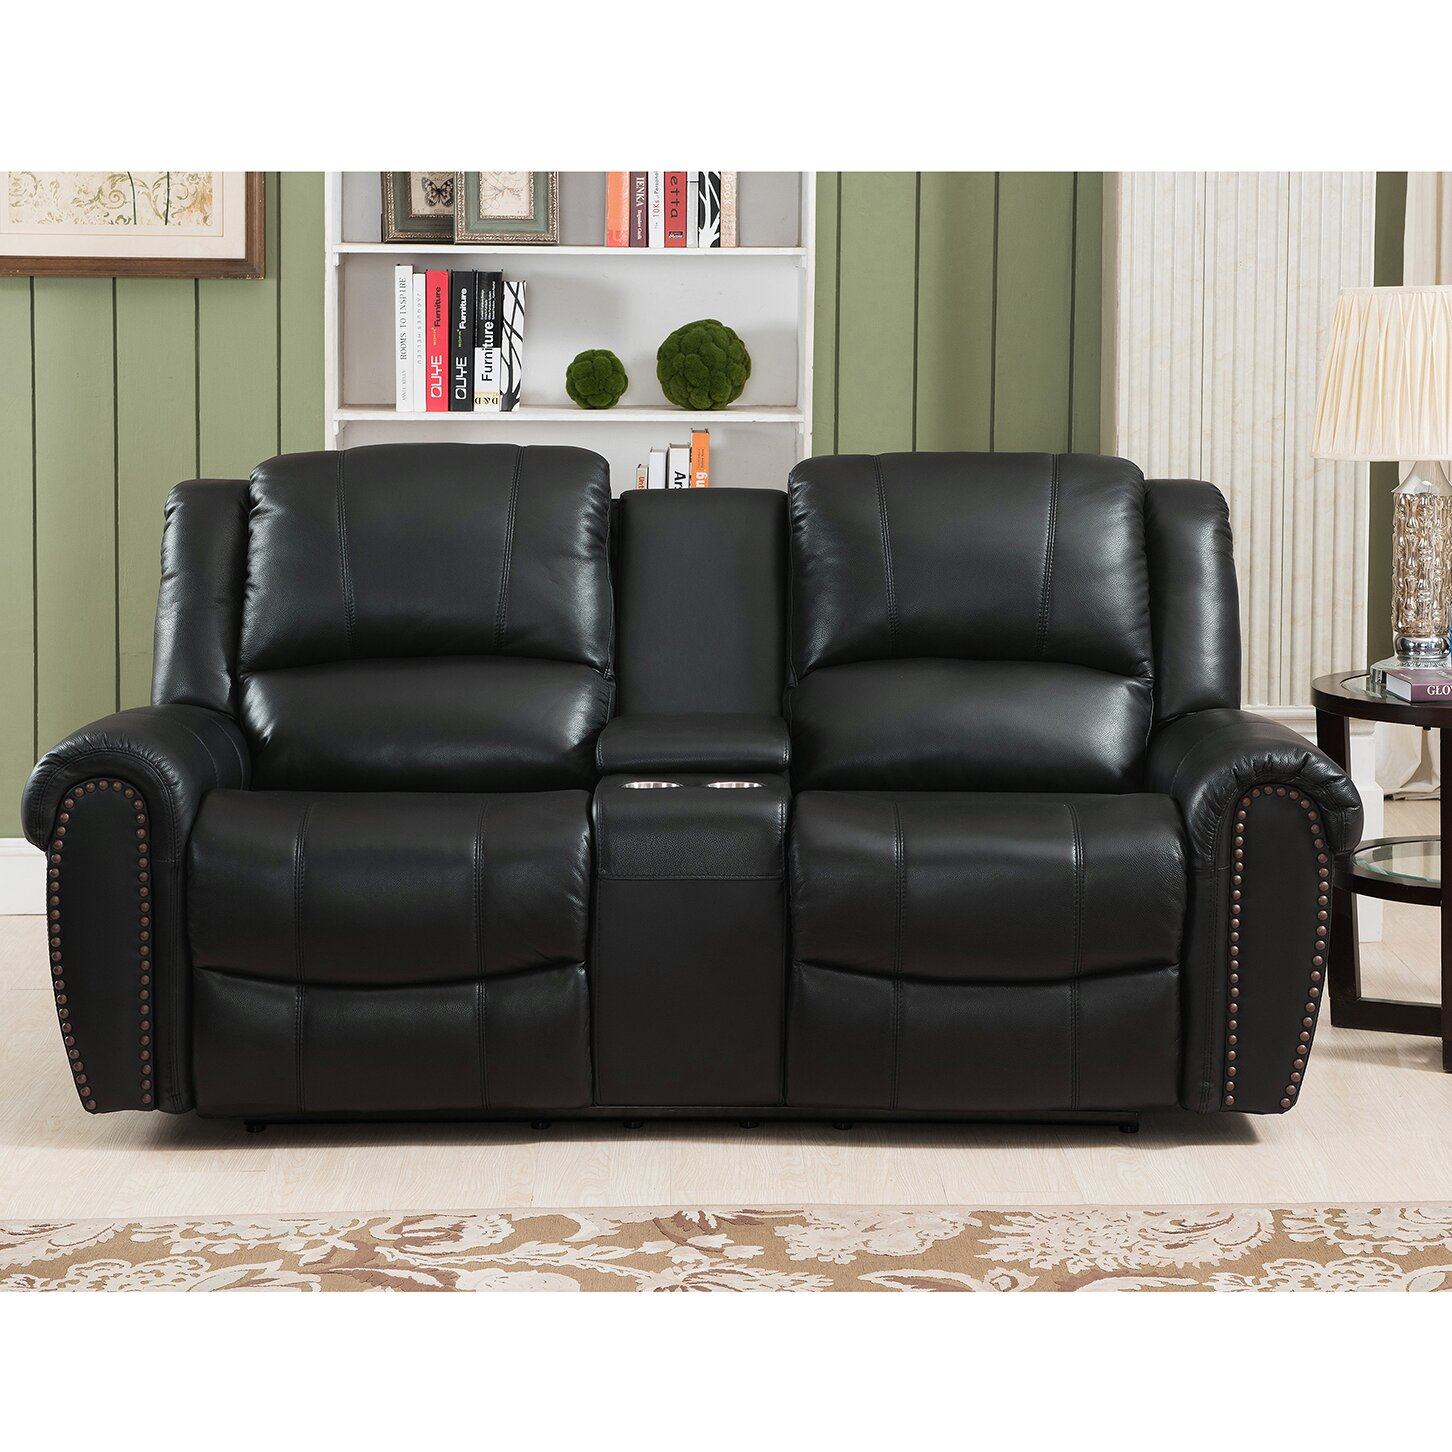 Houston 3 piece leather recliner living room set houston slc jpg